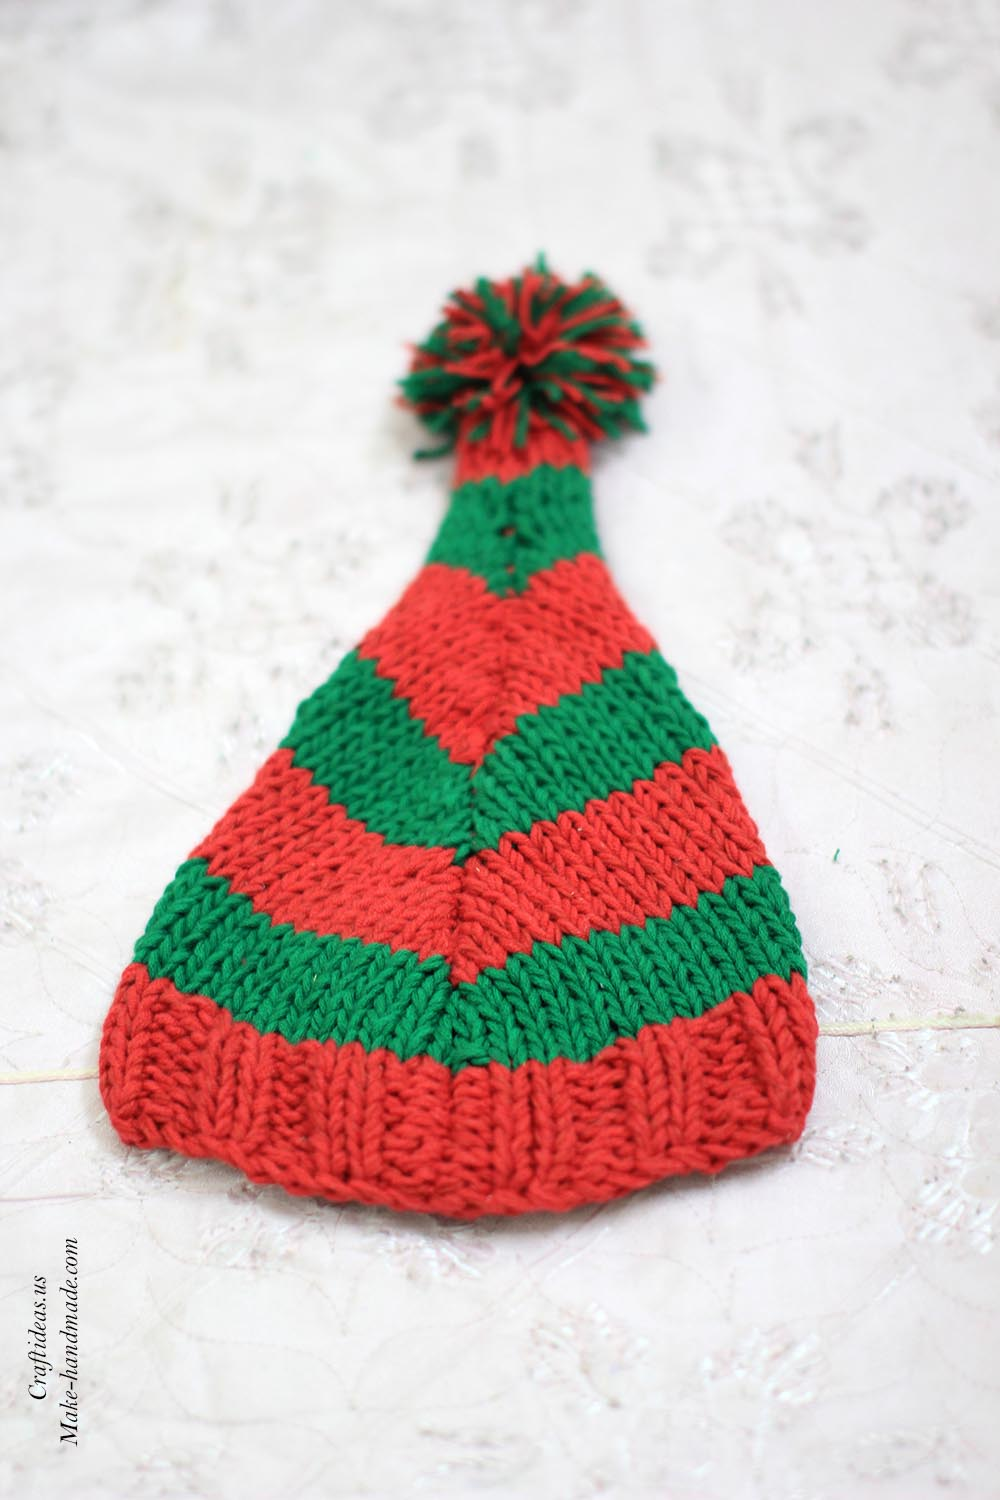 knitting-baby-hat-ideas